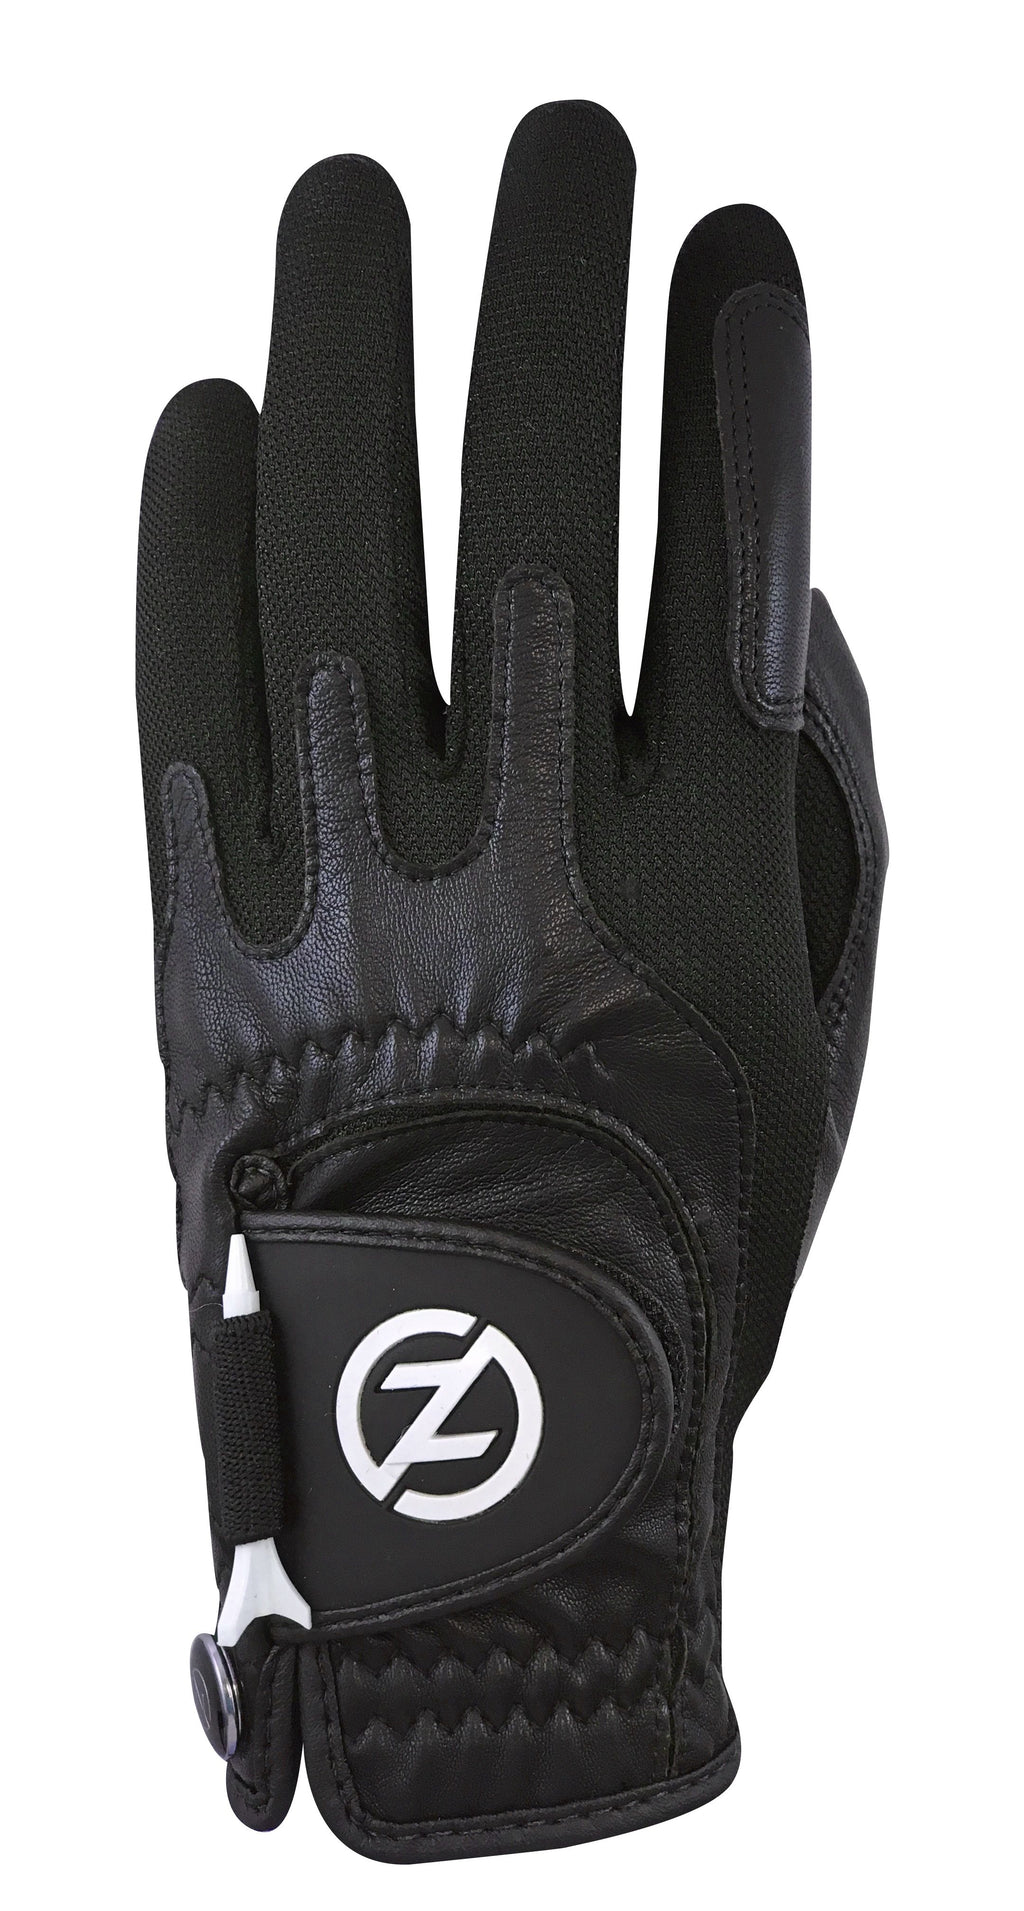 ZERO FRICTION MEN'S CABRETTA ELITE GOLF GLOVE (BLACK)